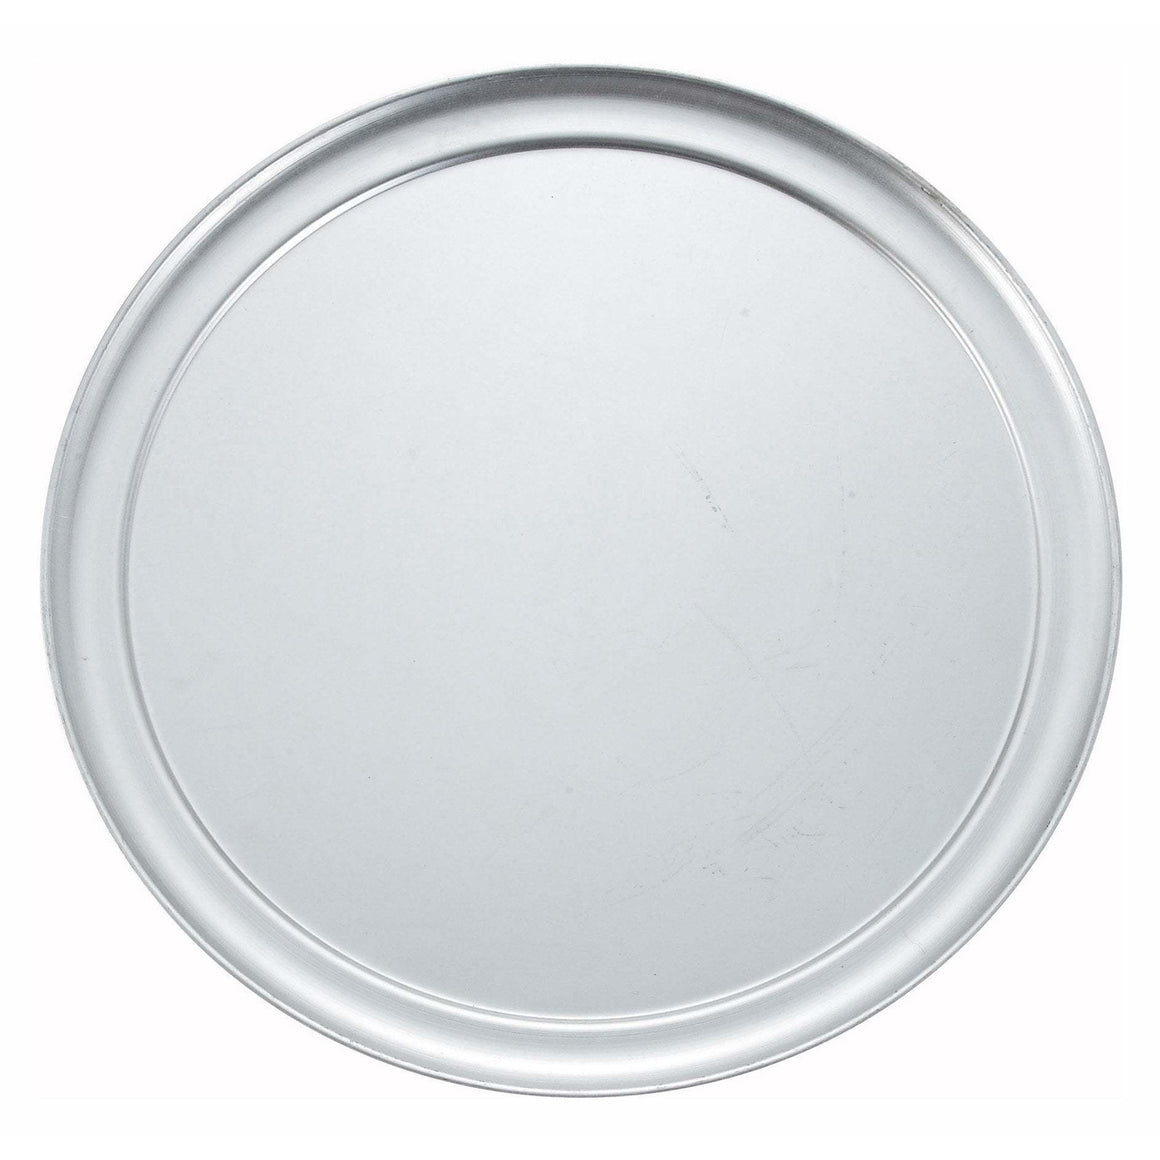 "Winco - APZT-15 - 15"" Wide Rim Pizza Tray, Aluminum - Pizza Supplies"